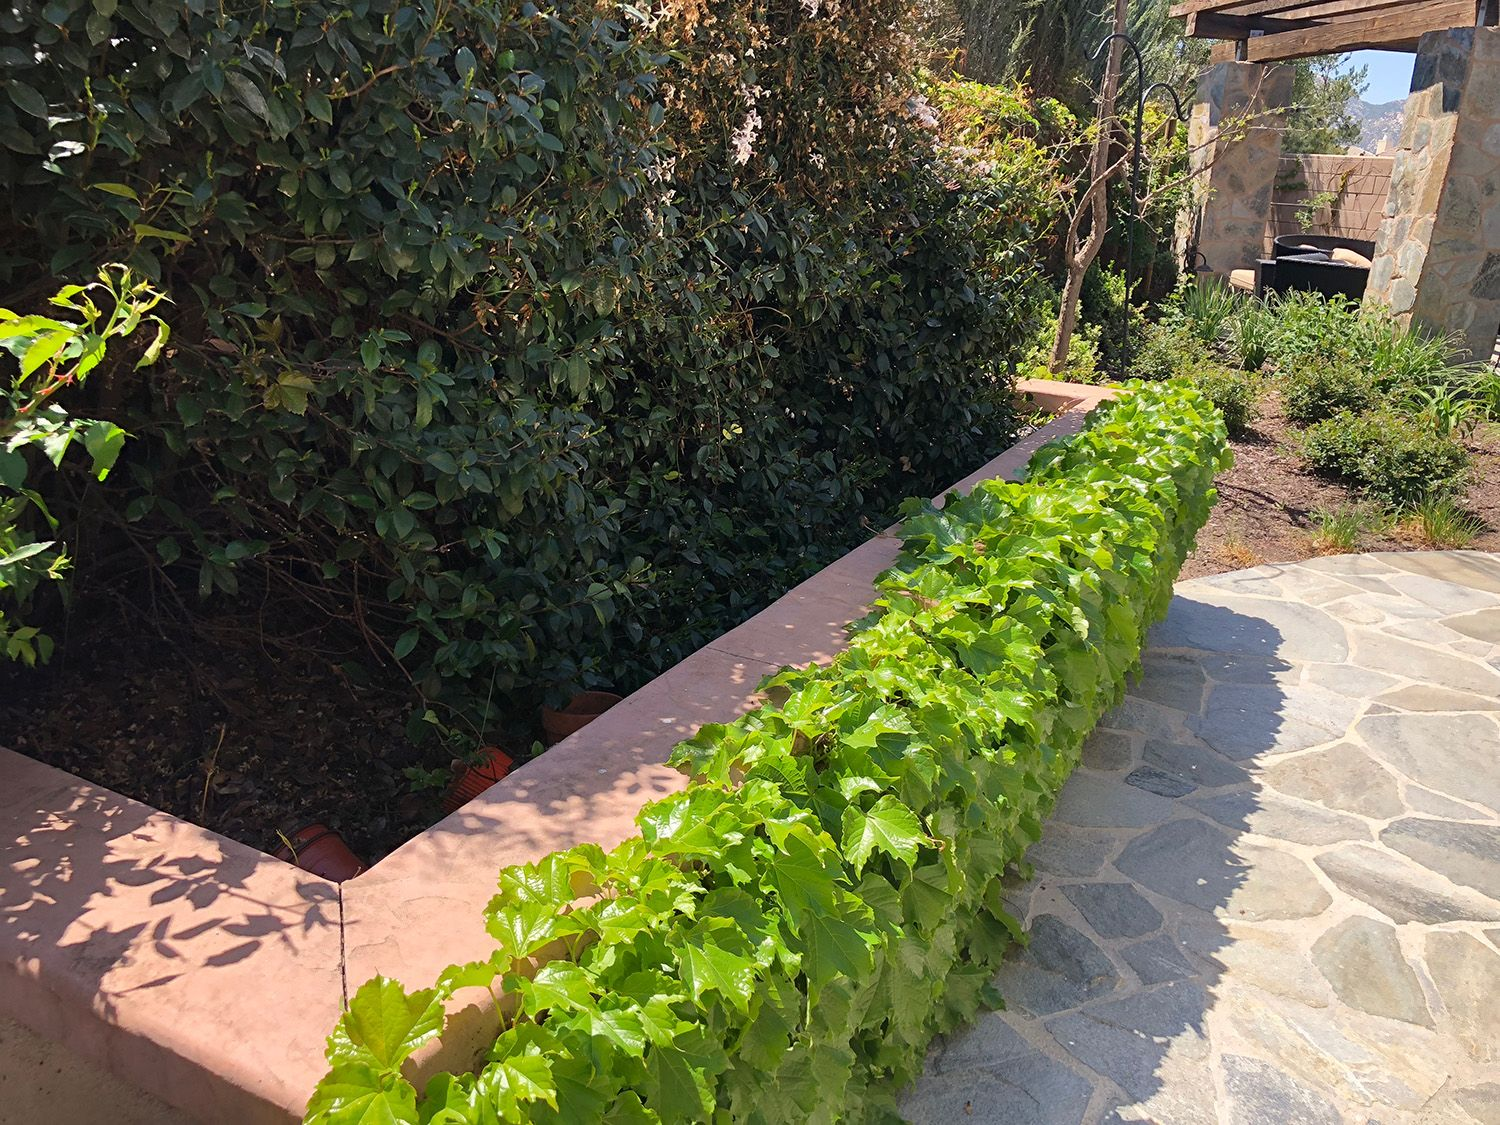 A Concrete Block With Stucco Raised Planter Box With Ivy Plantings And Flagstone Walkways Cottagegarden Planter Cottage Garden Plants Landscape Construction